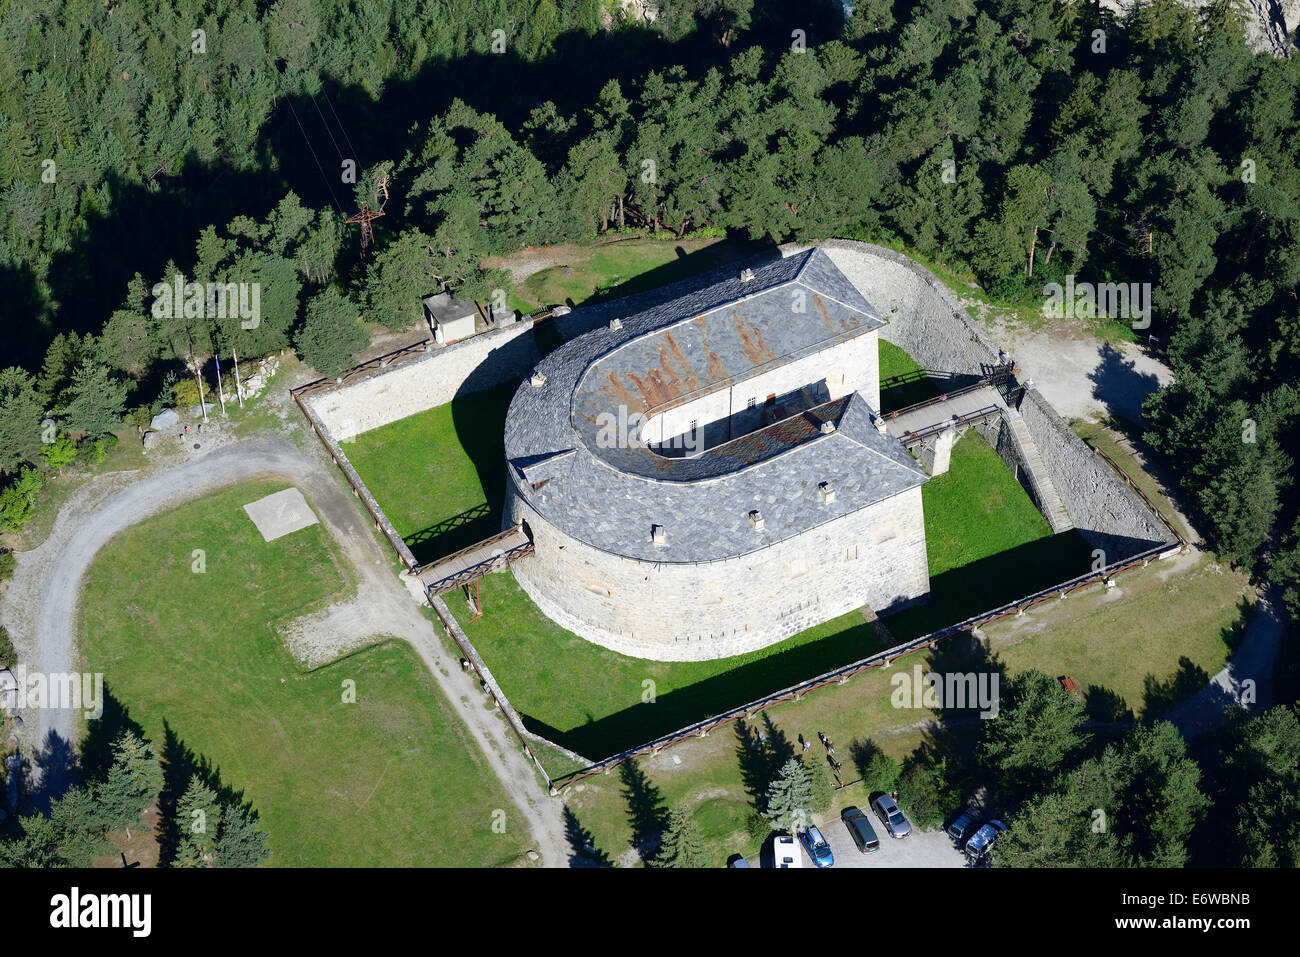 REDOUTE MARIE THERESE (aerial view). Part of the Esseillon Forts, in Avrieux, Savoie, Rhône-Alpes, France. - Stock Image